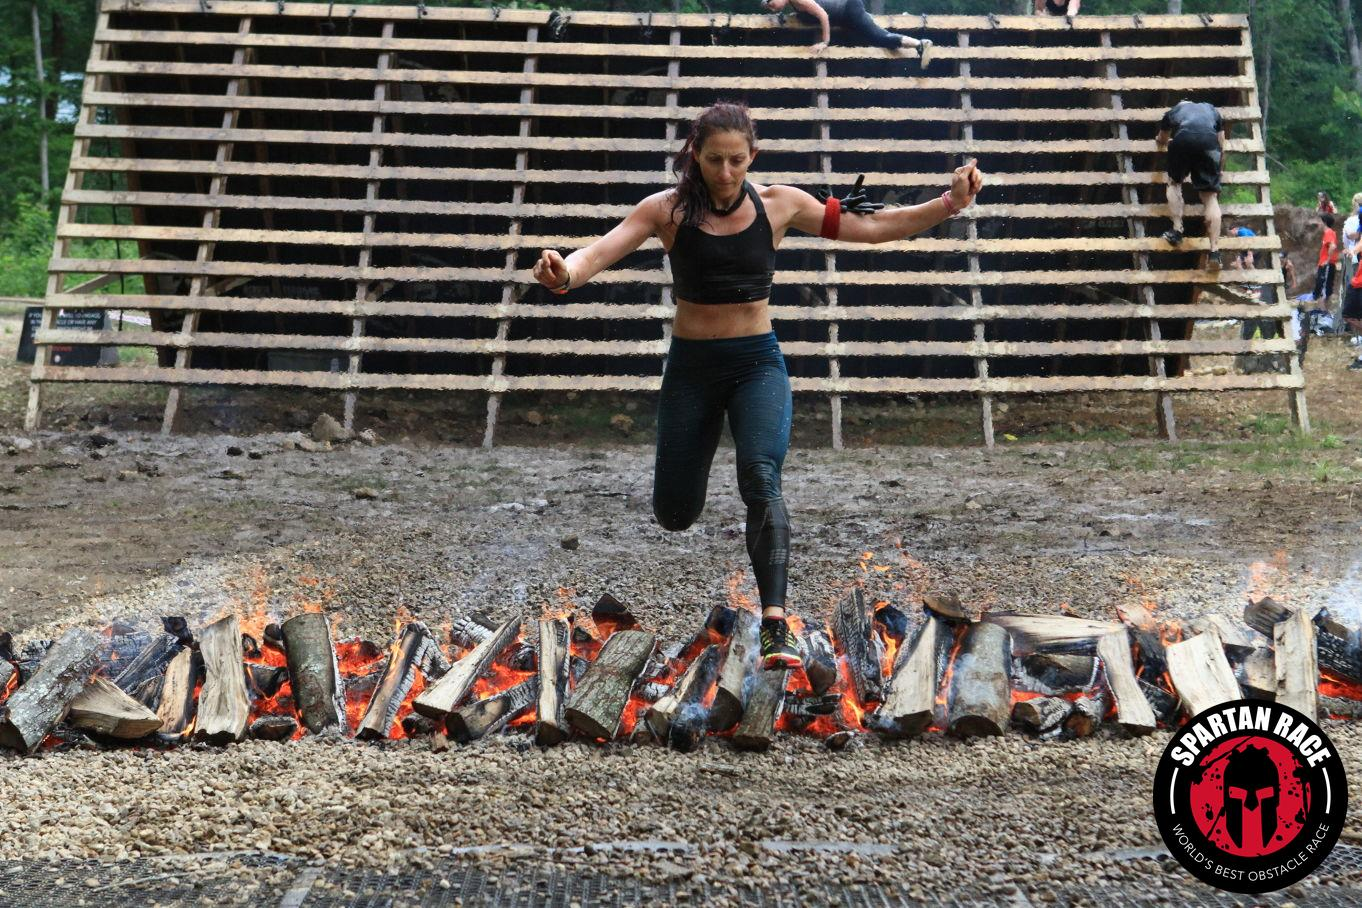 Steps to Success advisor Melissa Sirin jumps over a flaming bed of wood during a spartan race. According to Sirin, she loves this sport because it is constantly challenging her in new ways.